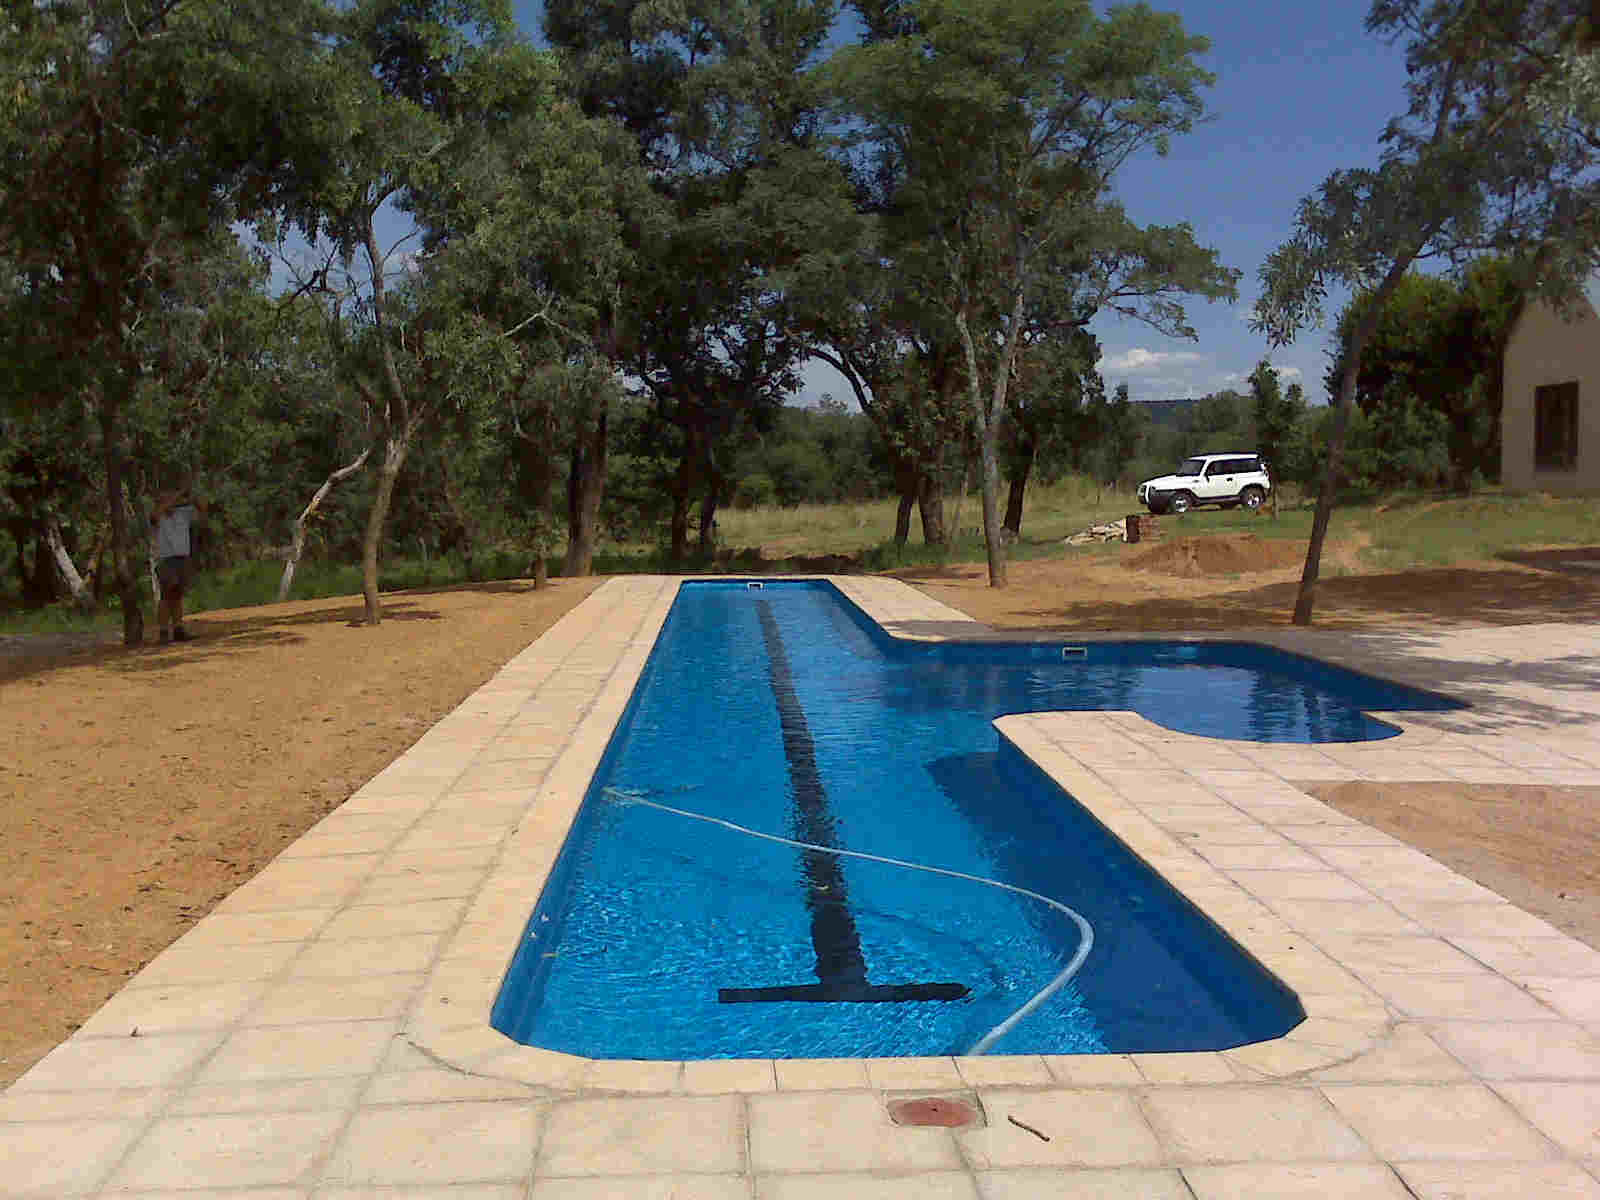 Backyard Landscaping Ideas-Swimming Pool Design | Homesthetics ...